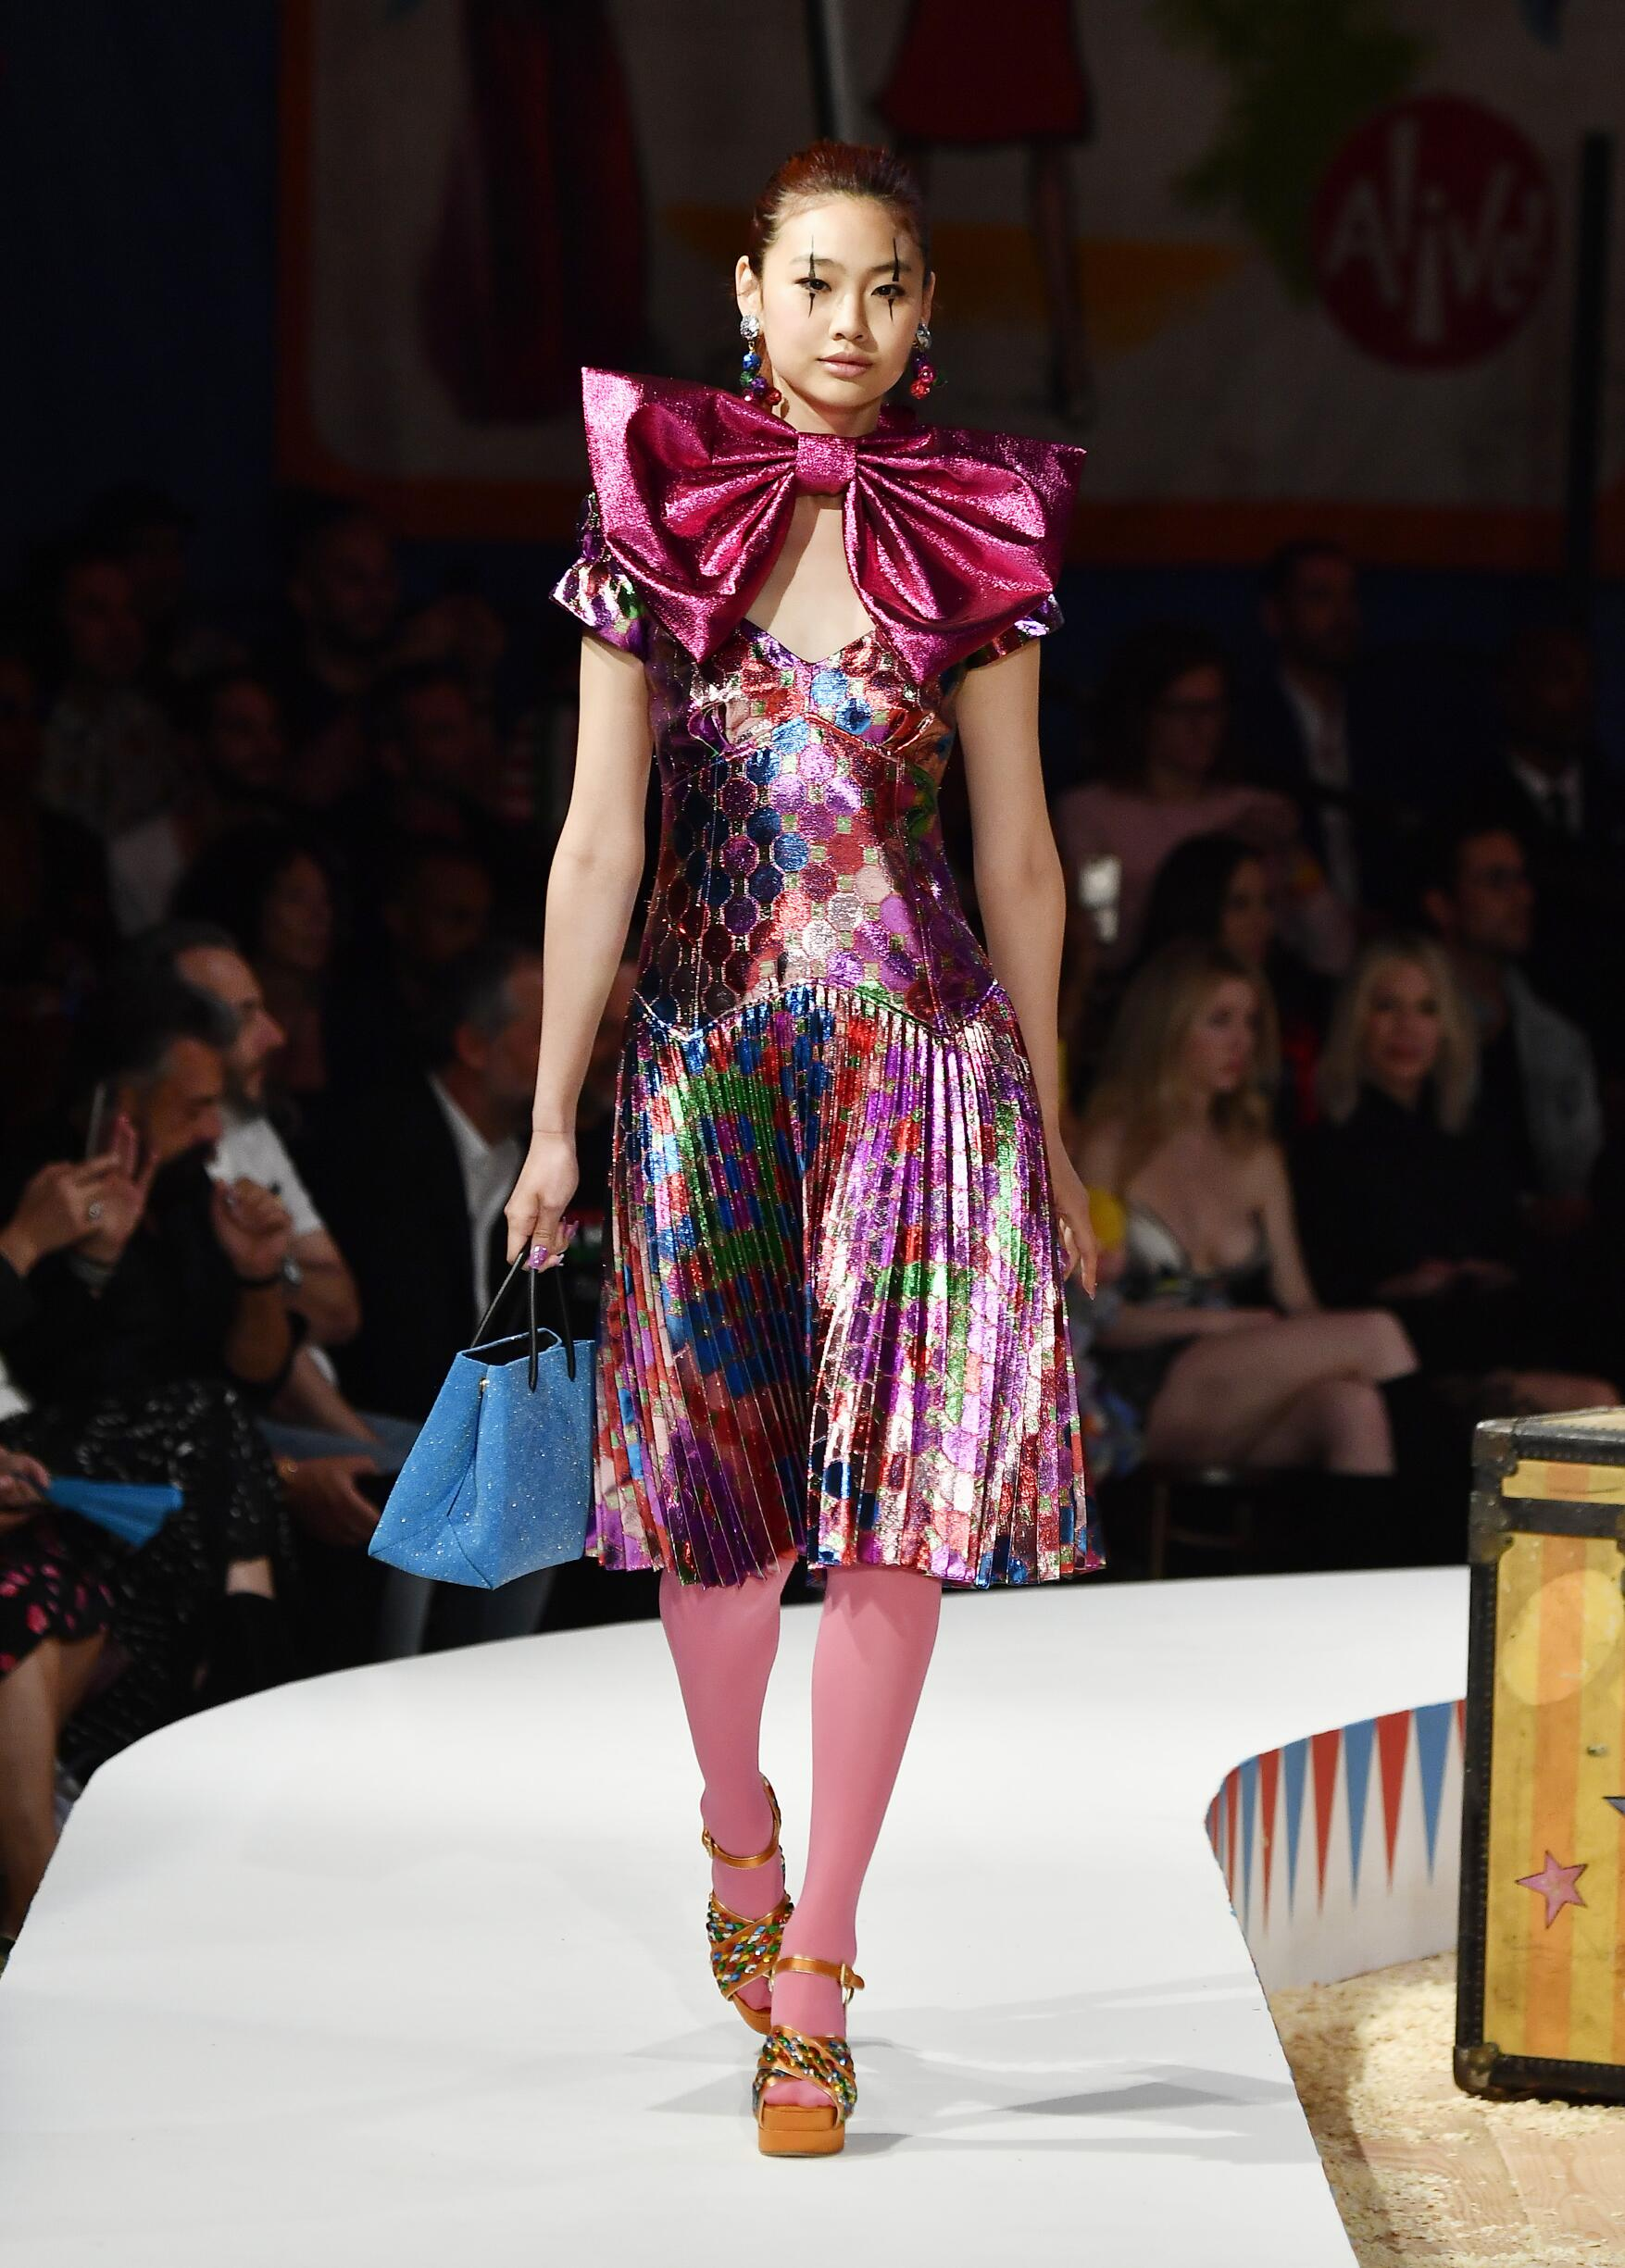 Moschino Spring Summer 2019 Menswear and Women's Resort Collection Look 59 Los Angeles